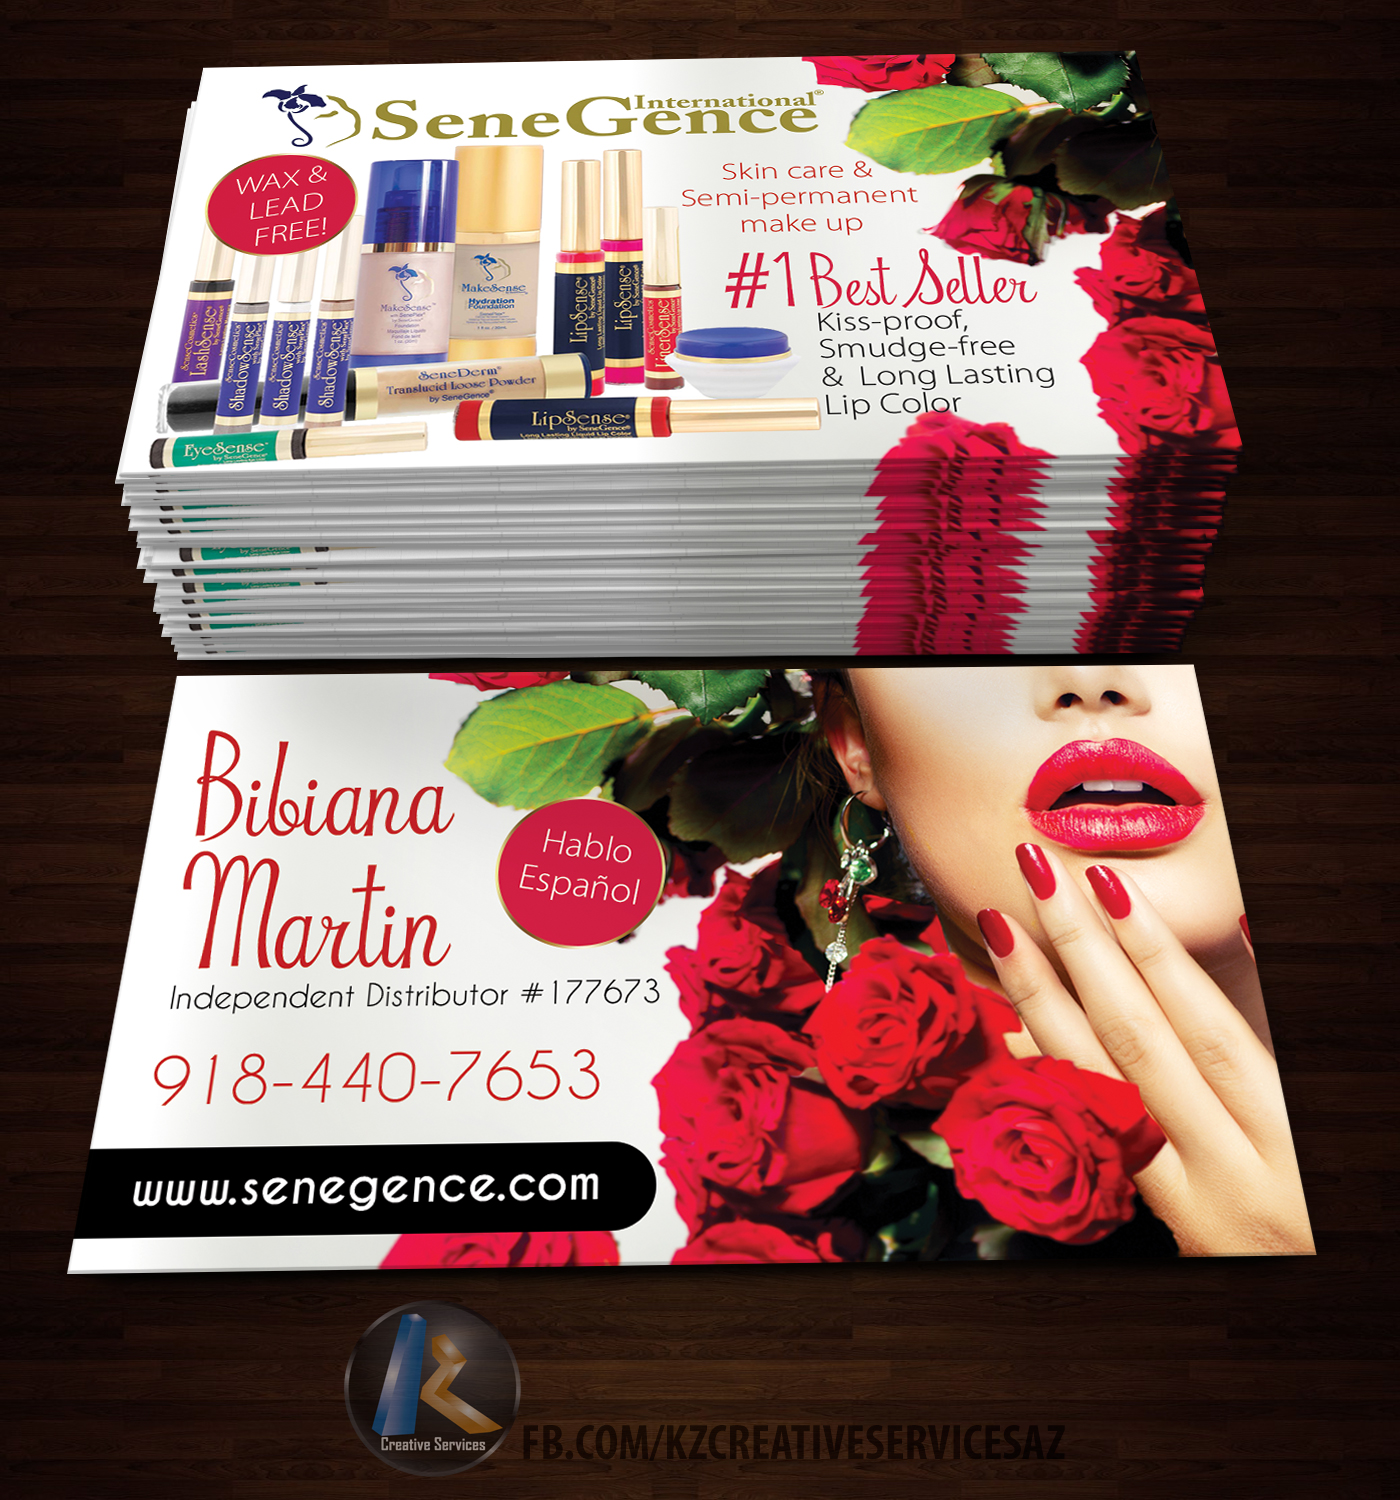 Senegence business cards style 1 kz creative services online senegence business cards style 1 colourmoves